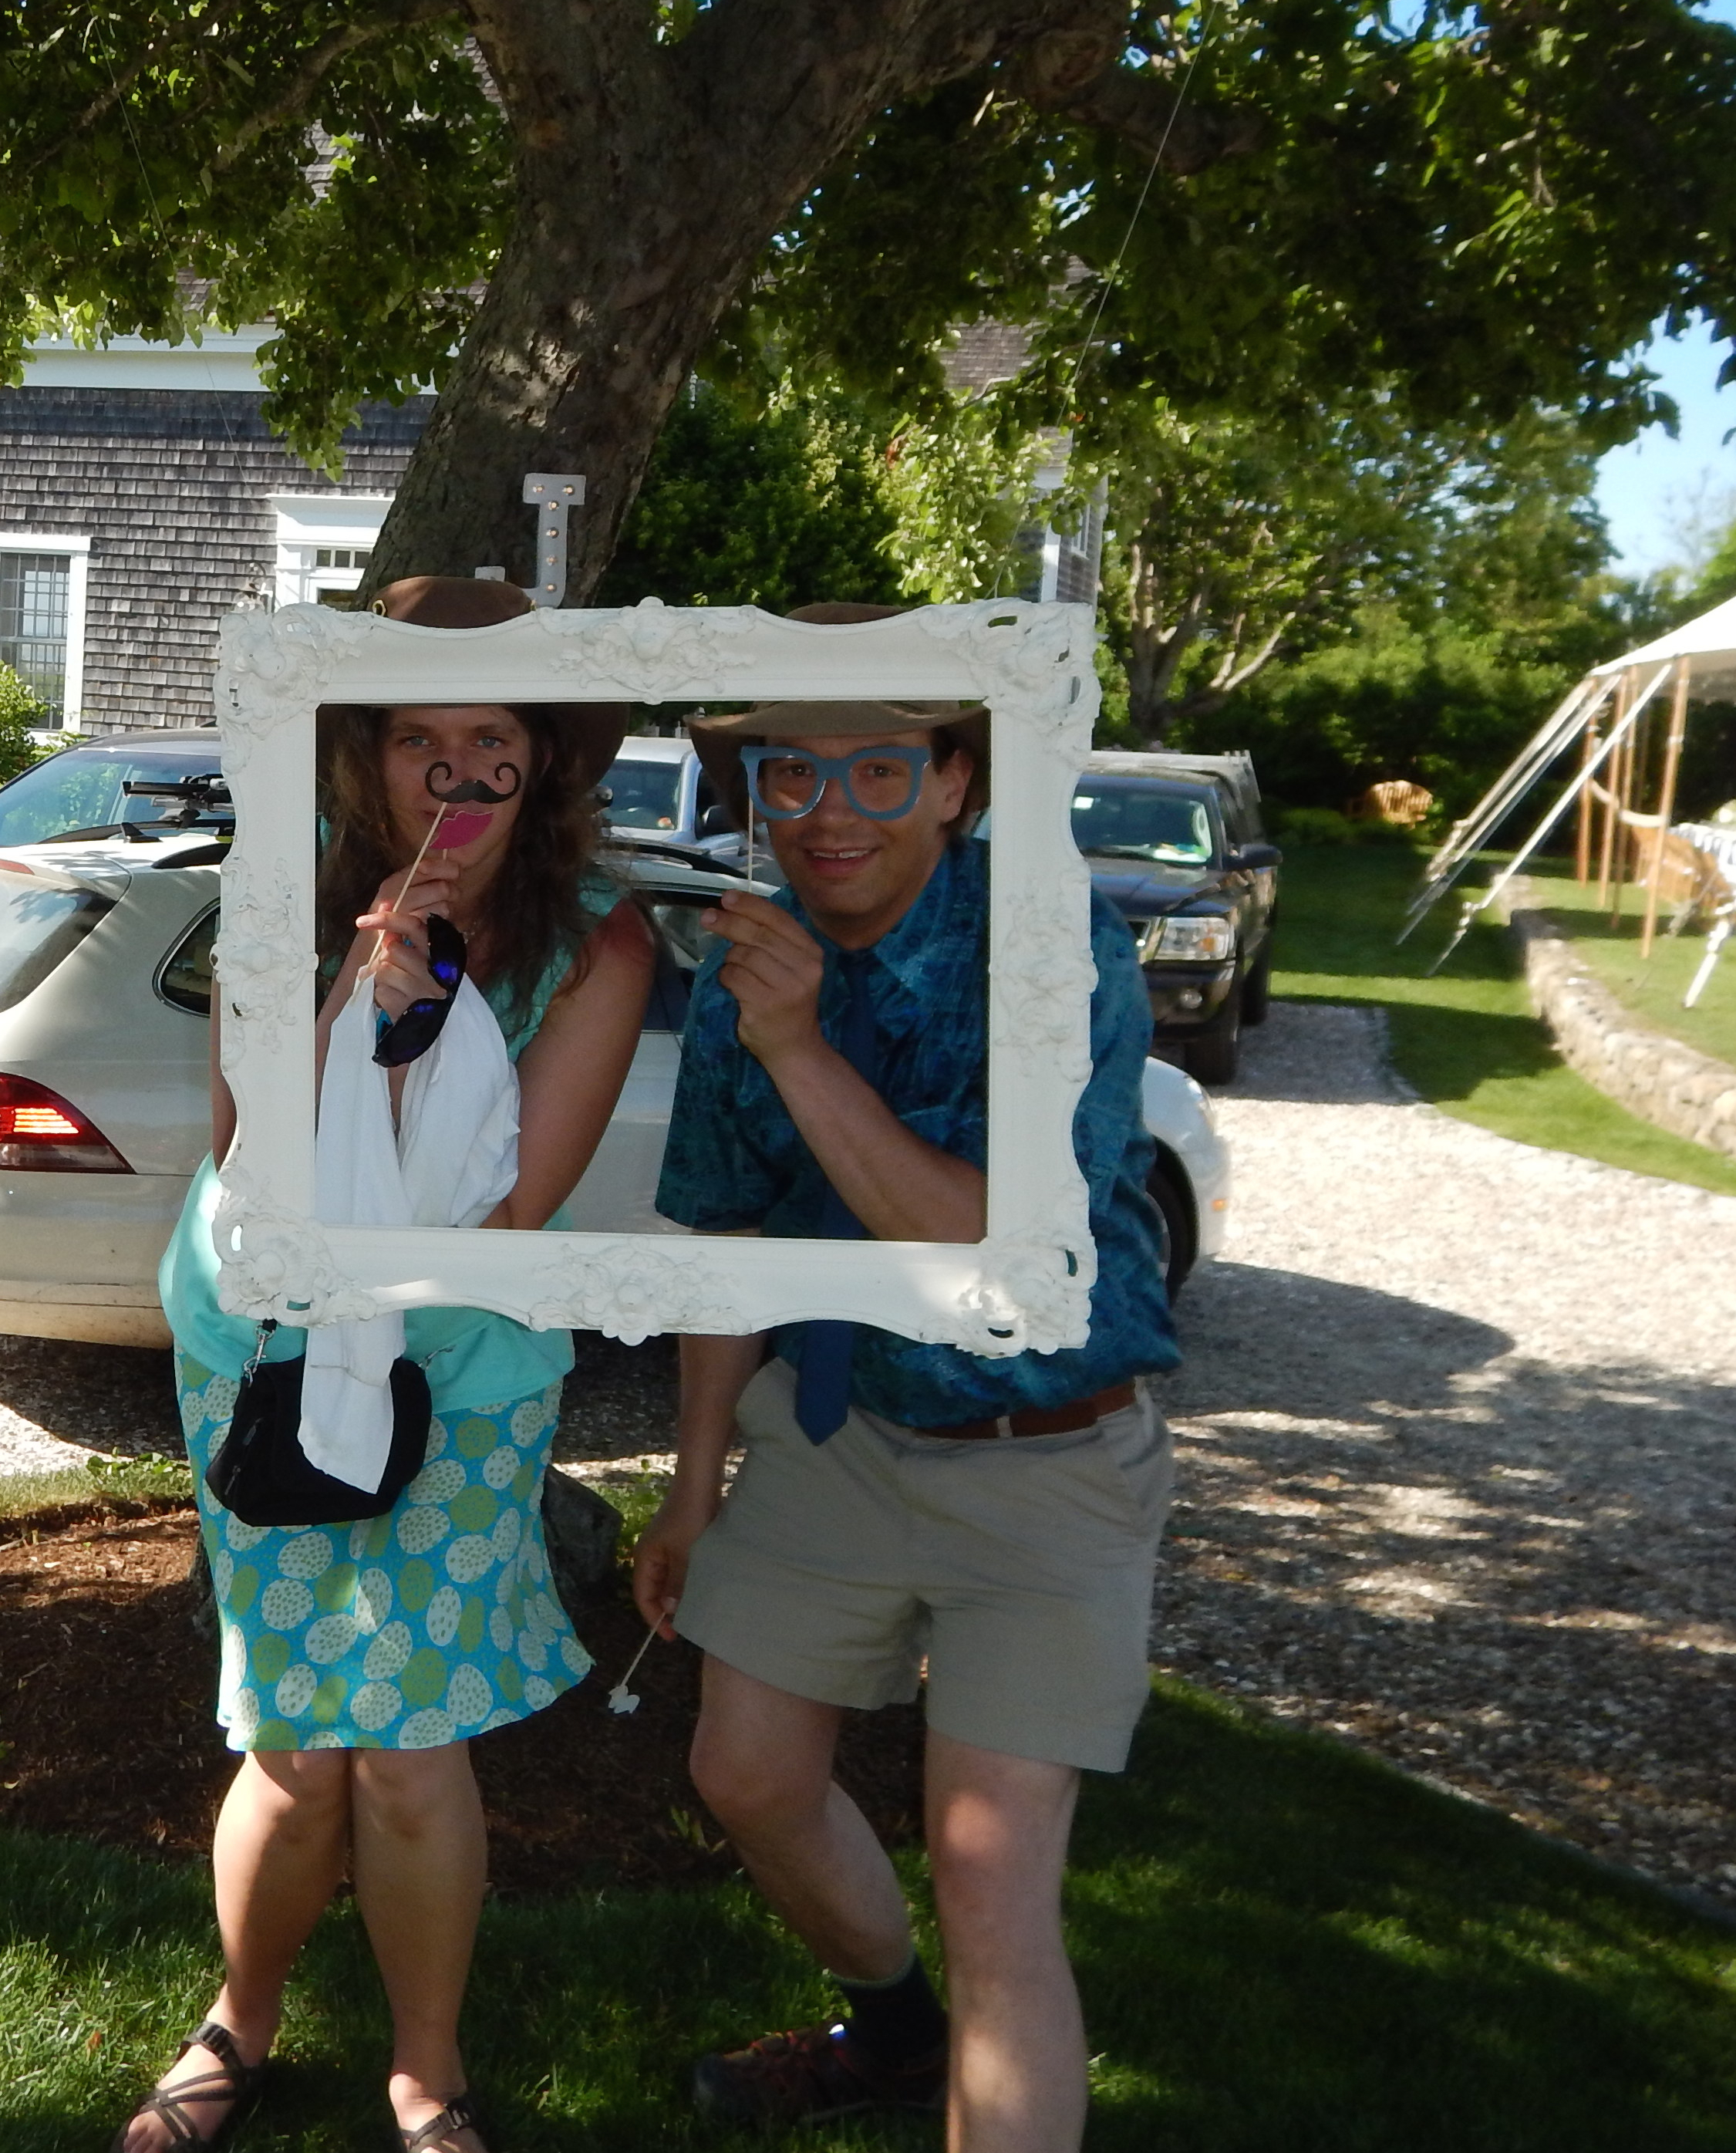 Caption: At a wedding collecting ideas for our wedding....Cape Cod June 2015